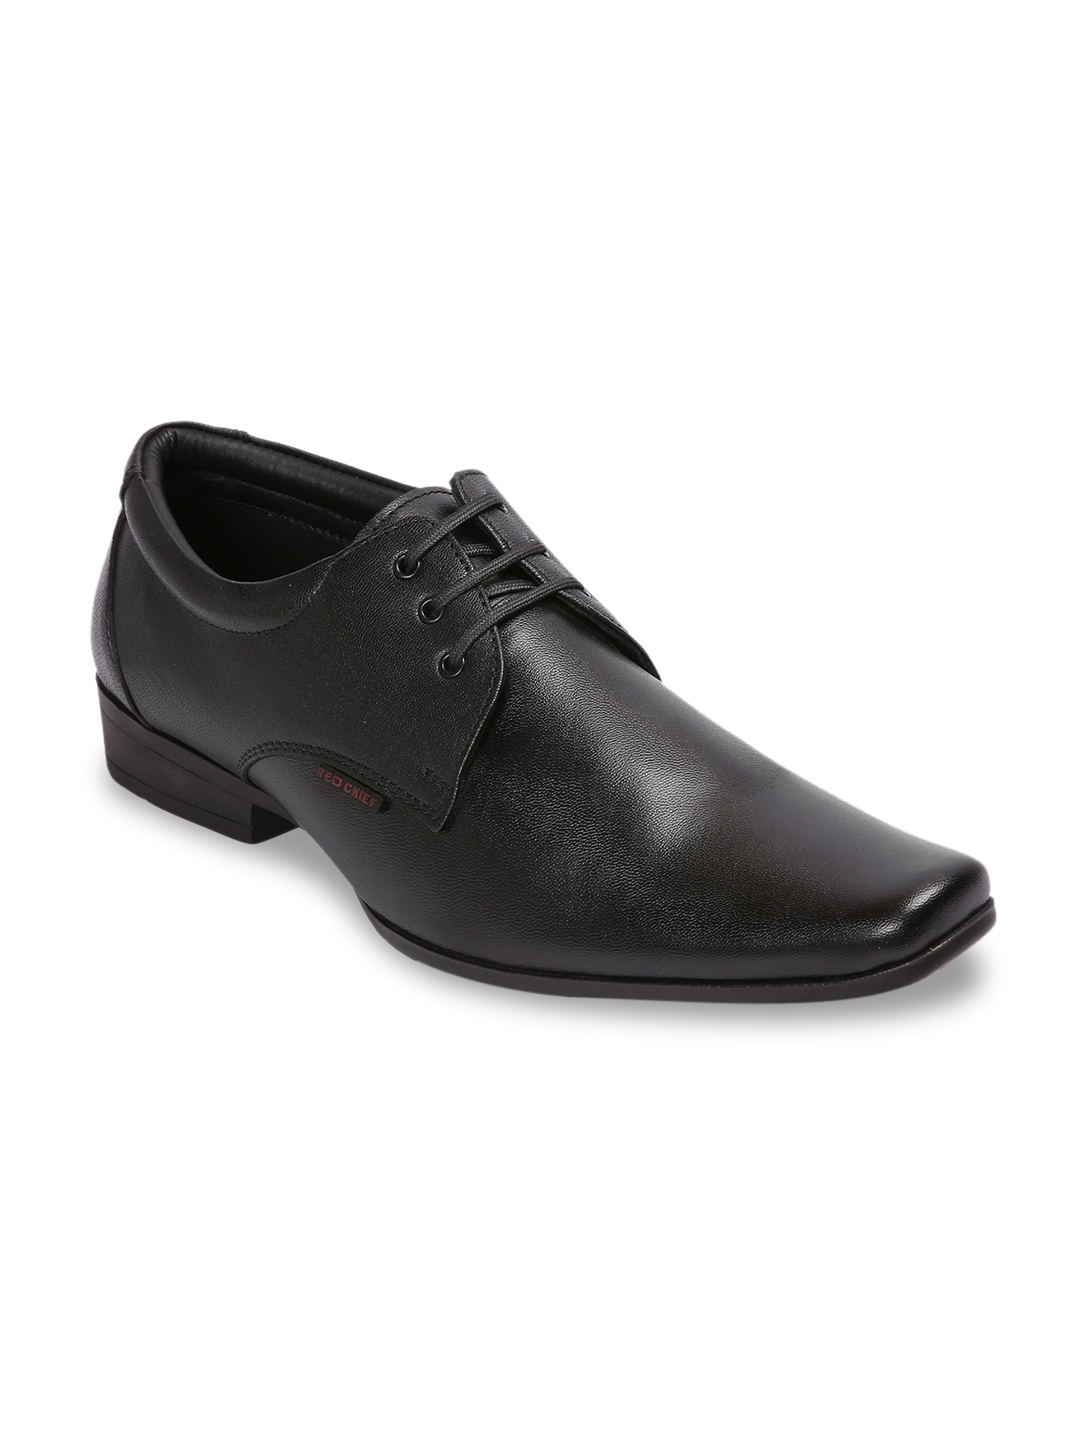 Buy Red Chief Men Black Leather Formal